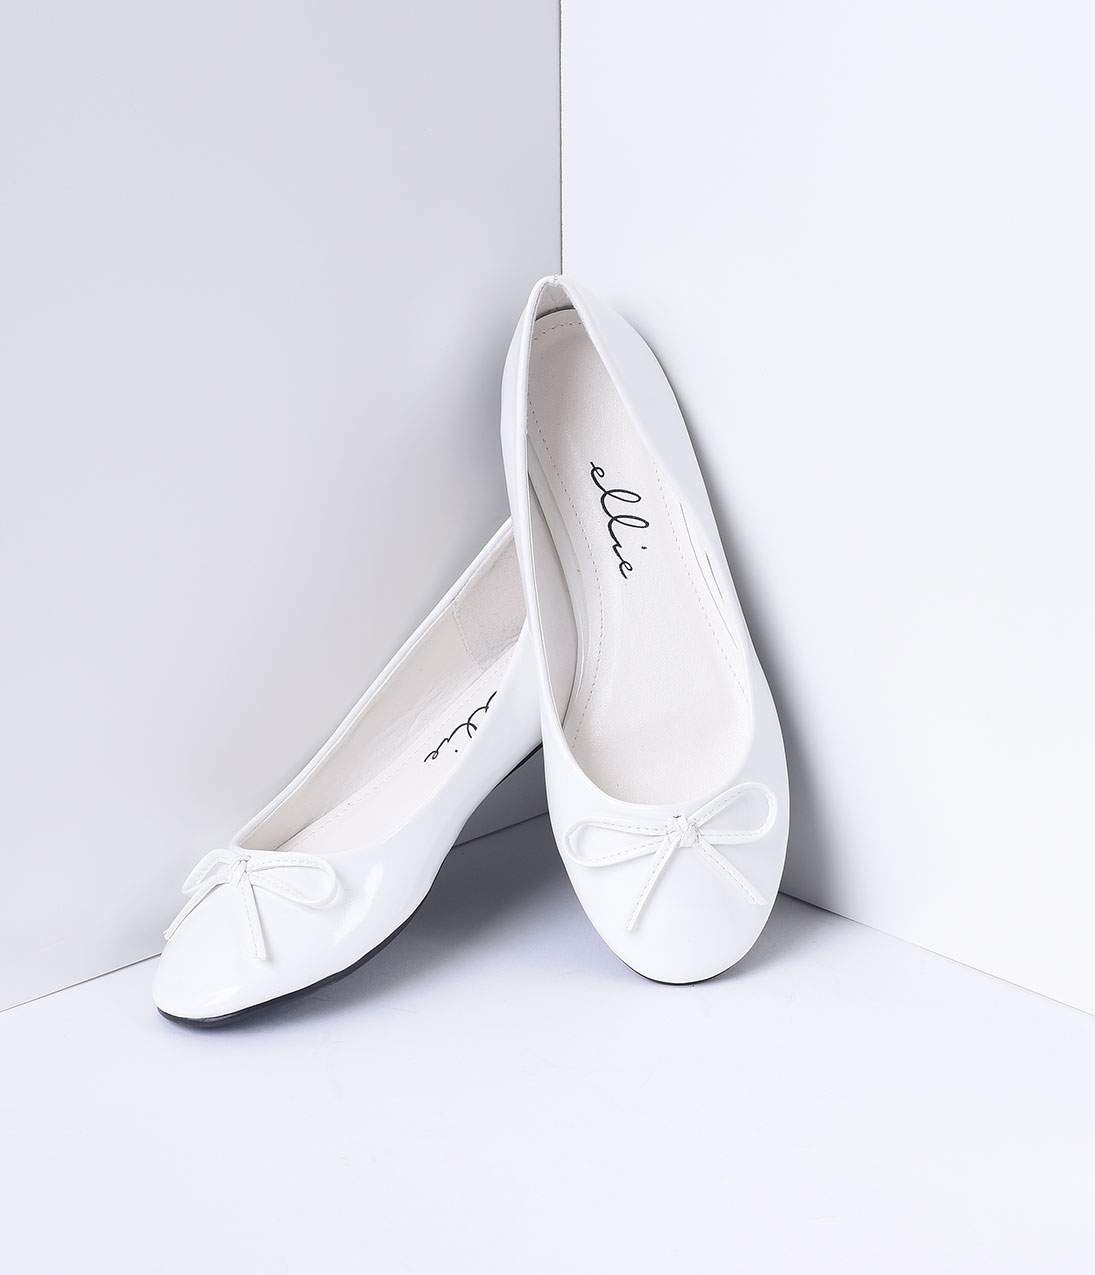 Retro Vintage Flats and Low Heel Shoes White Bow Mila Flats $32.00 AT vintagedancer.com